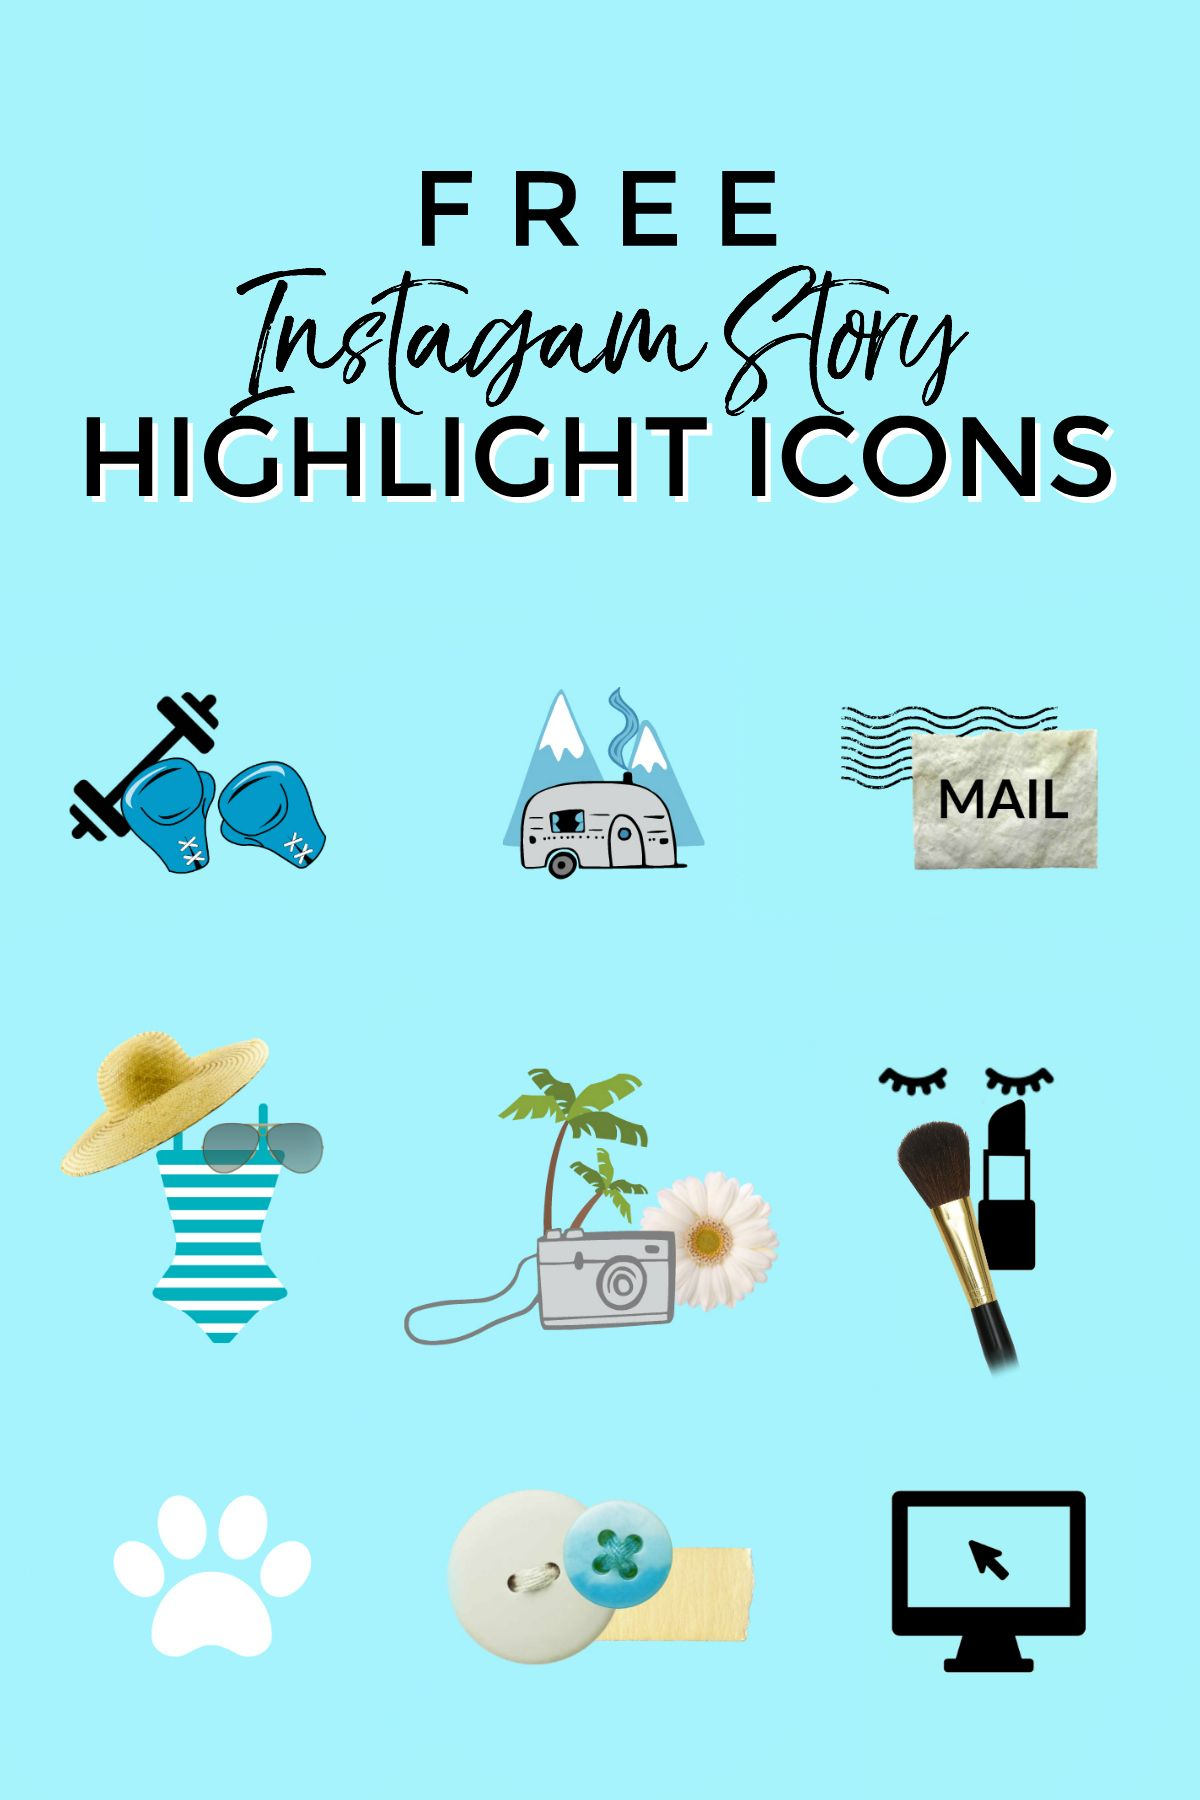 Instagram Story Highlight Icons Tutorial (free download